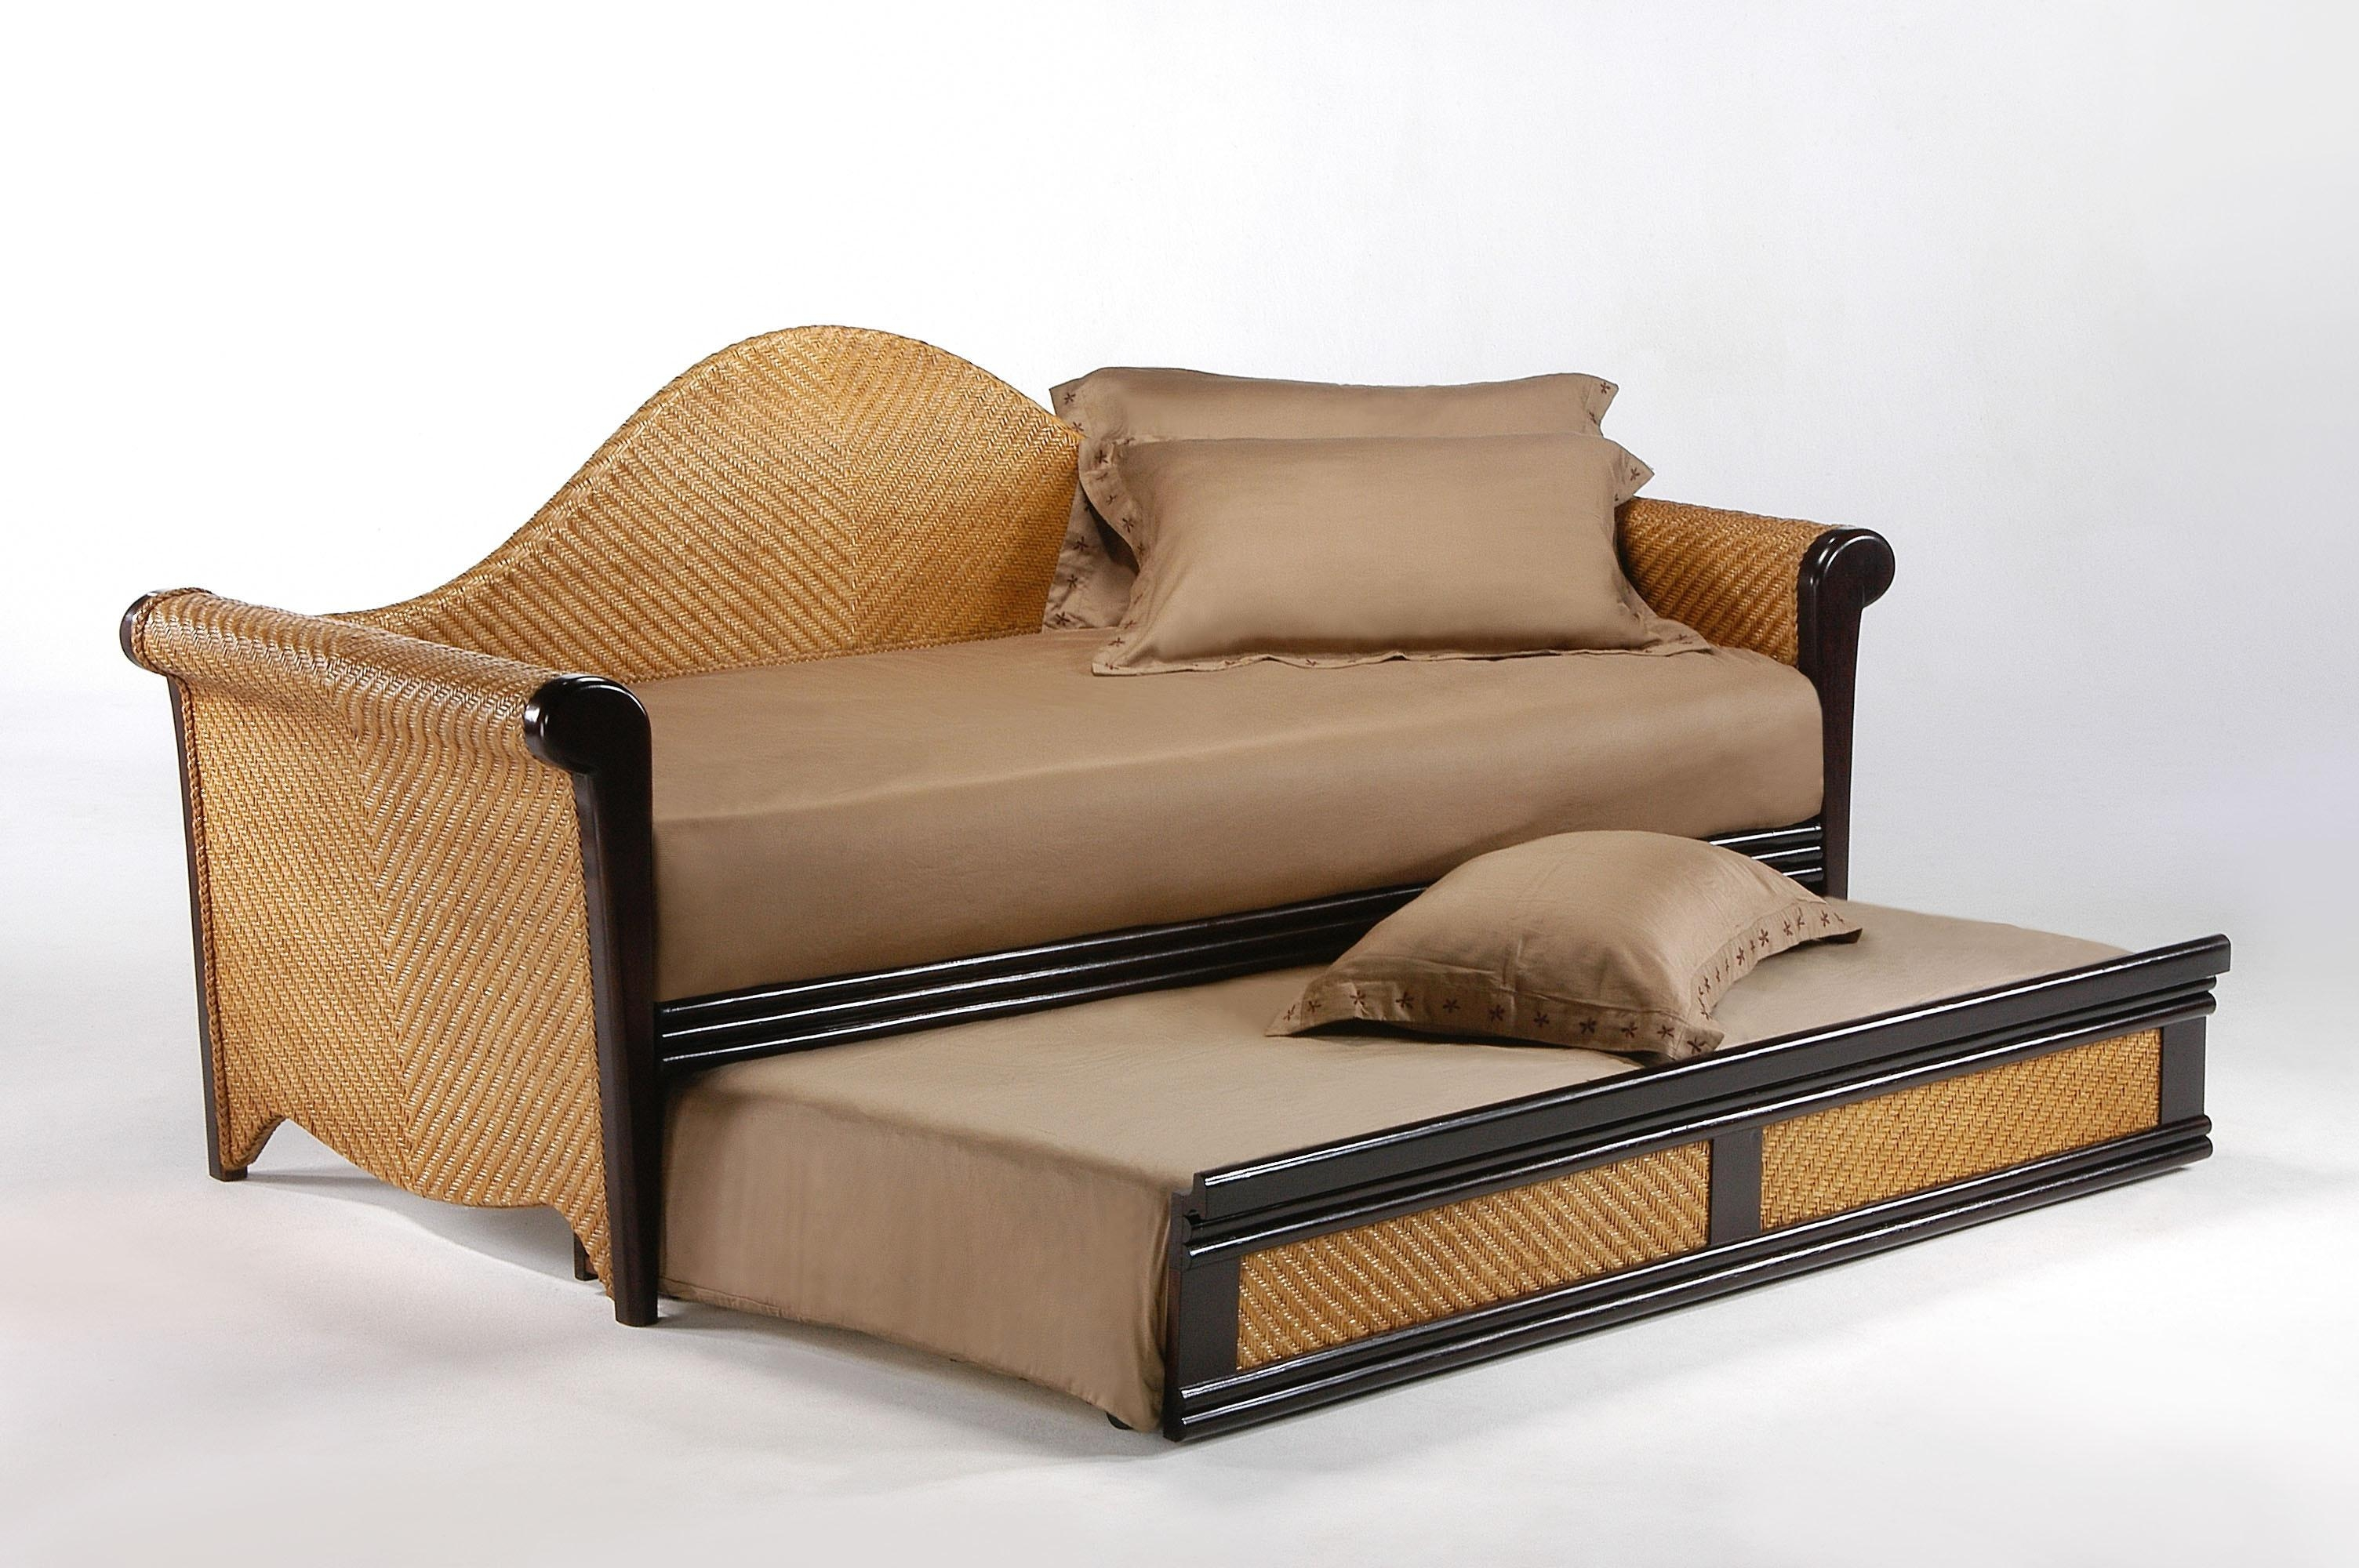 Sleeper Sofas Chair Beds Ikea Image On Remarkable Sofa Daybed With For Sofas Daybed With Trundle (Image 10 of 20)